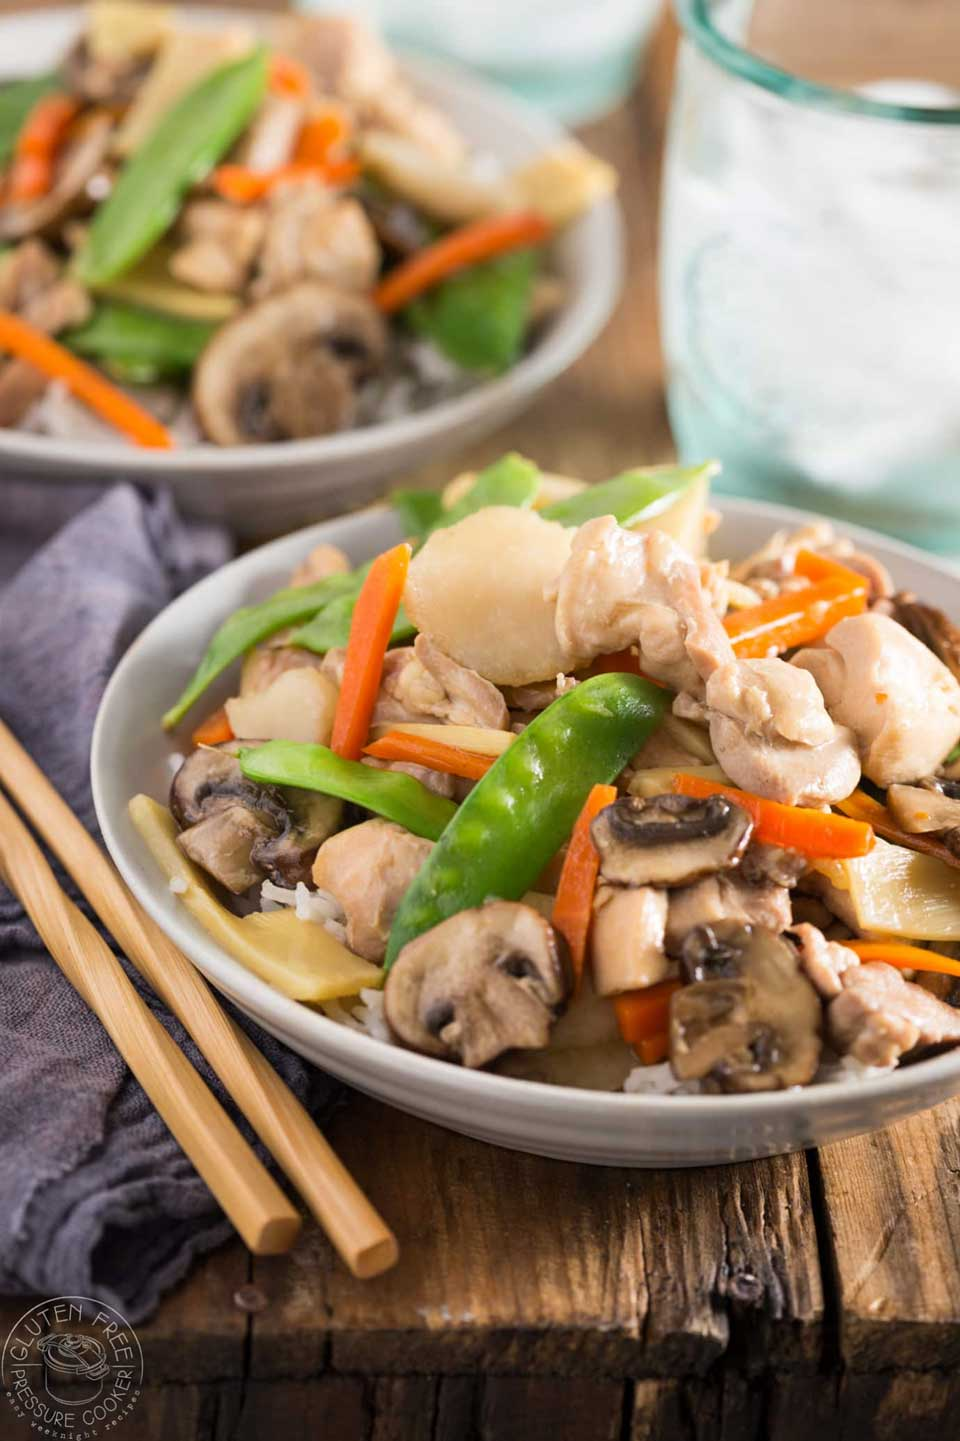 Forget take-out! We've got 20 great chicken dinners for you today, all super easy and fast in your pressure cooker. Case in point: this Pressure Cooker Moo Goo Gai Pan from Sheena at Gluten Free Pressure Cooker!